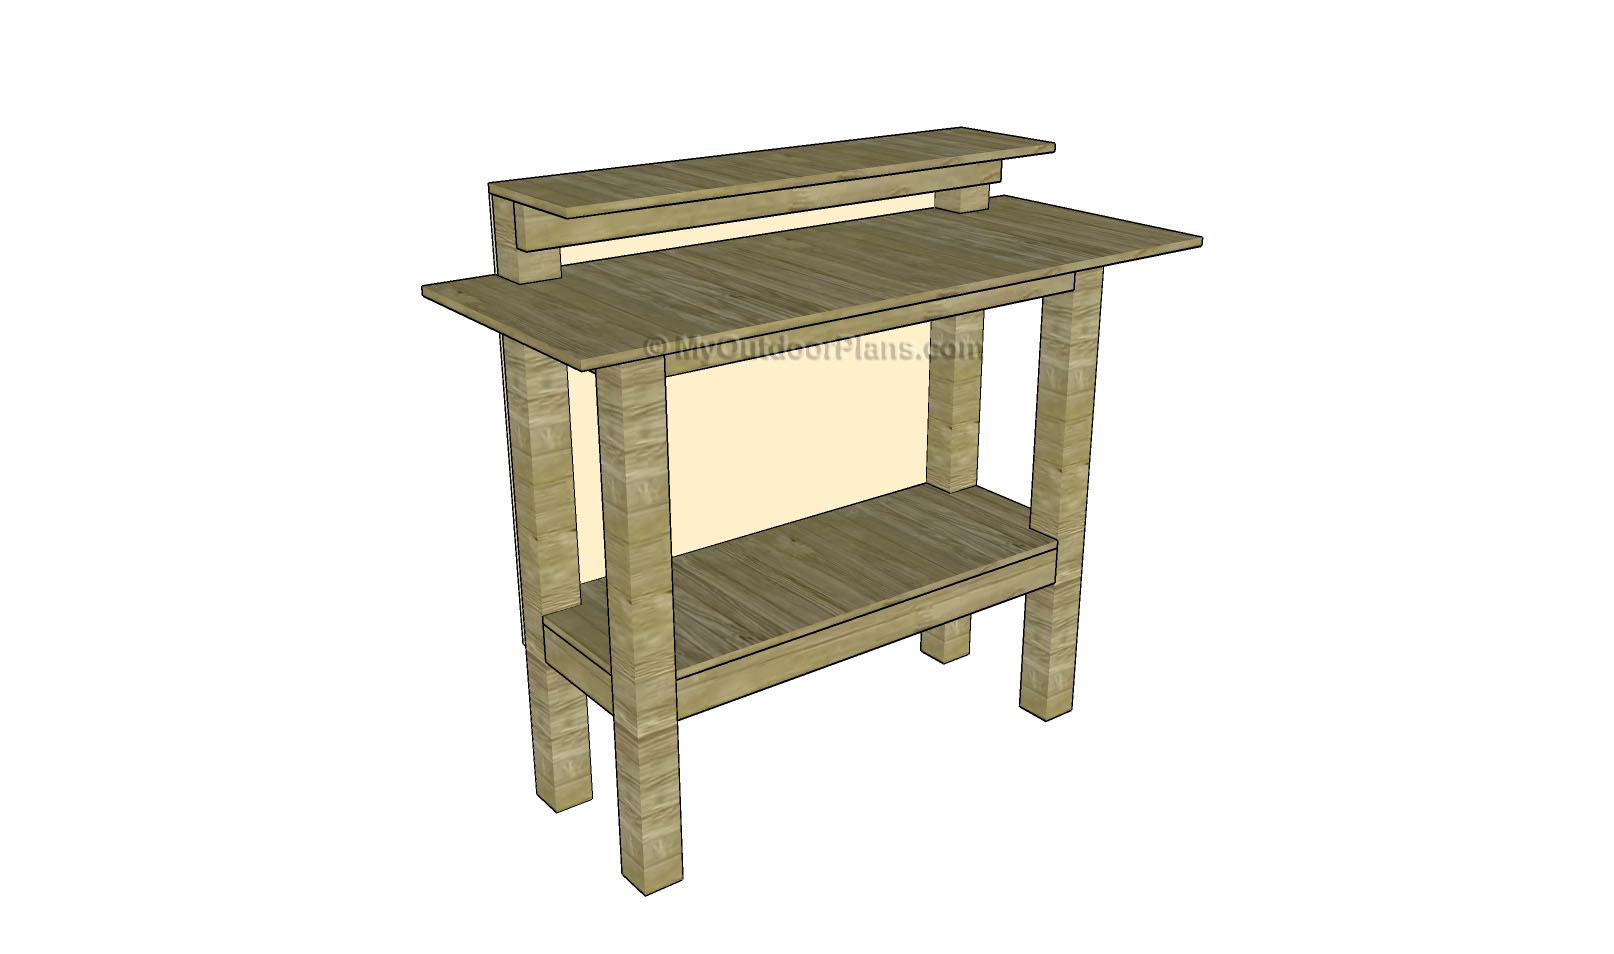 Stand Up Desk Plans | Free Outdoor Plans - DIY Shed, Wooden Playhouse ...